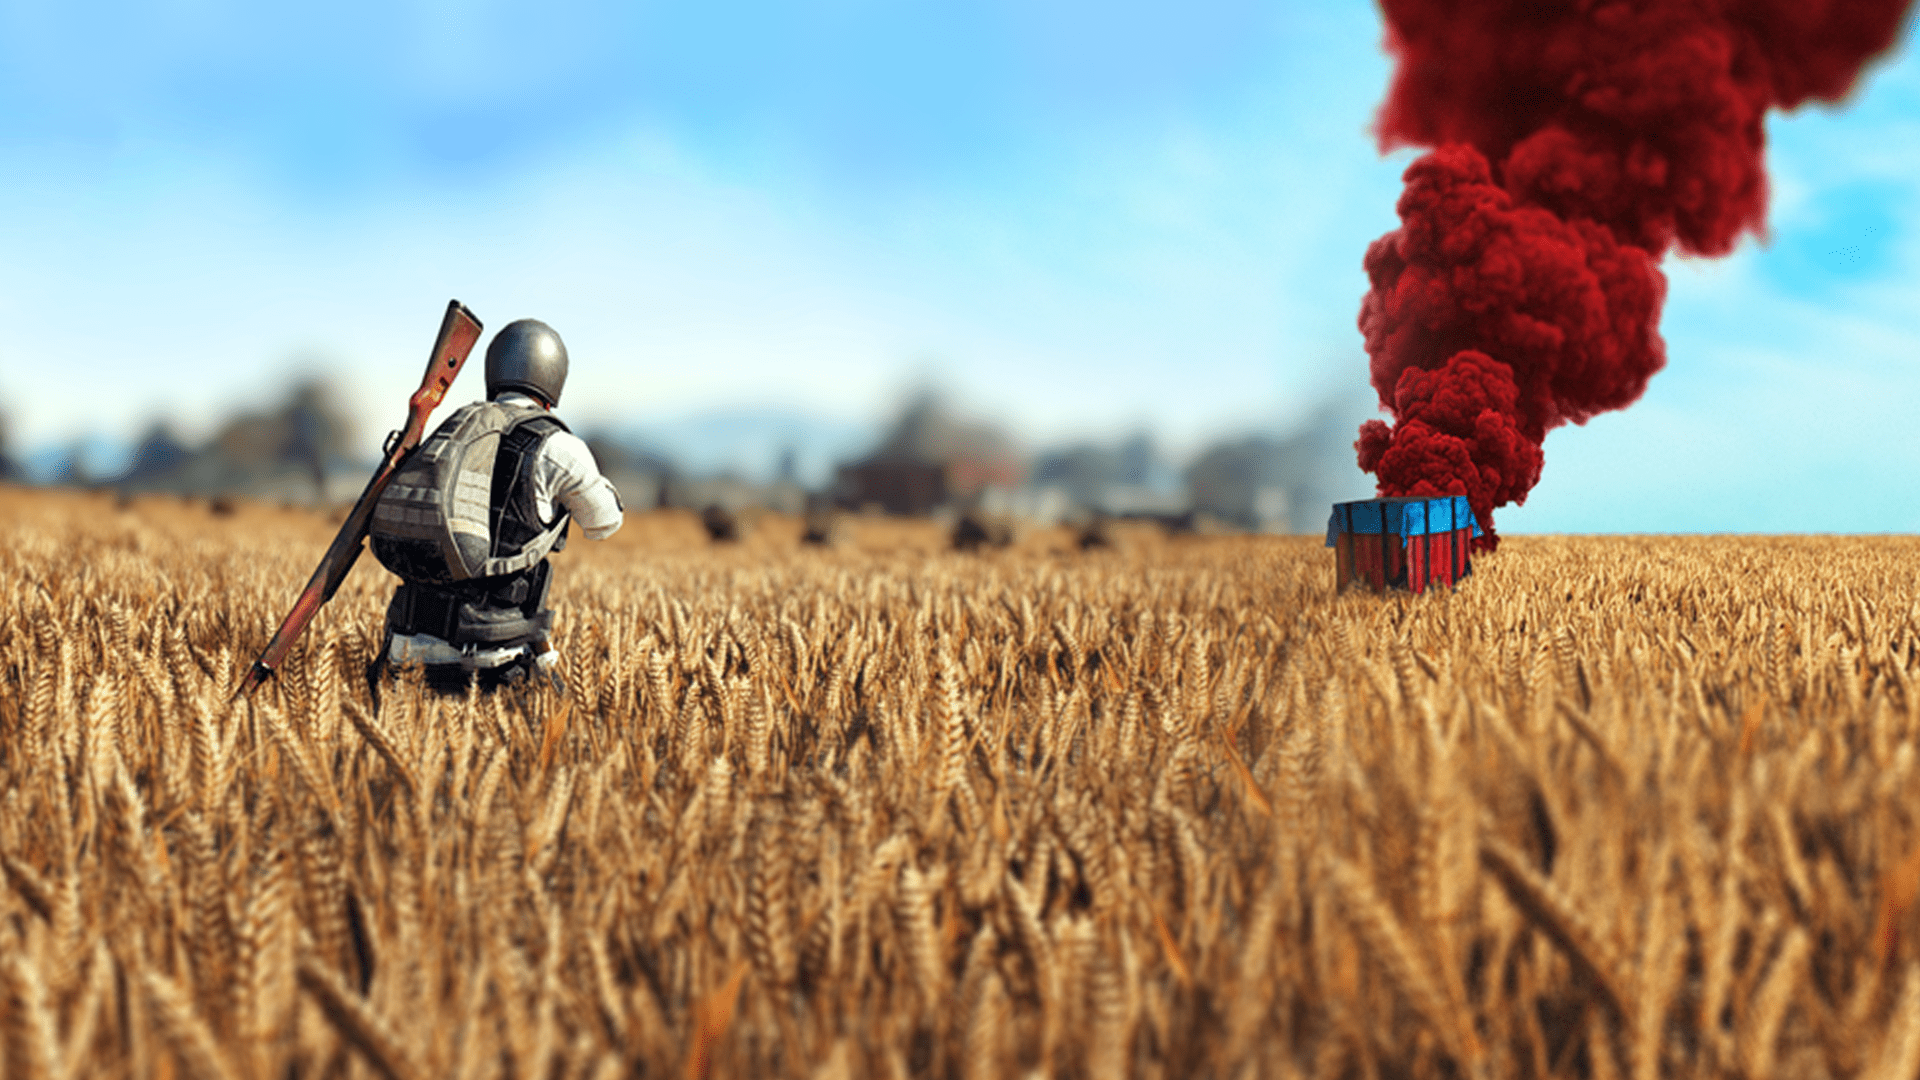 Pubg Wallpaper 4k Mobile: PUBG Poster Supply Drop Wallpaper Desktop And Mobile